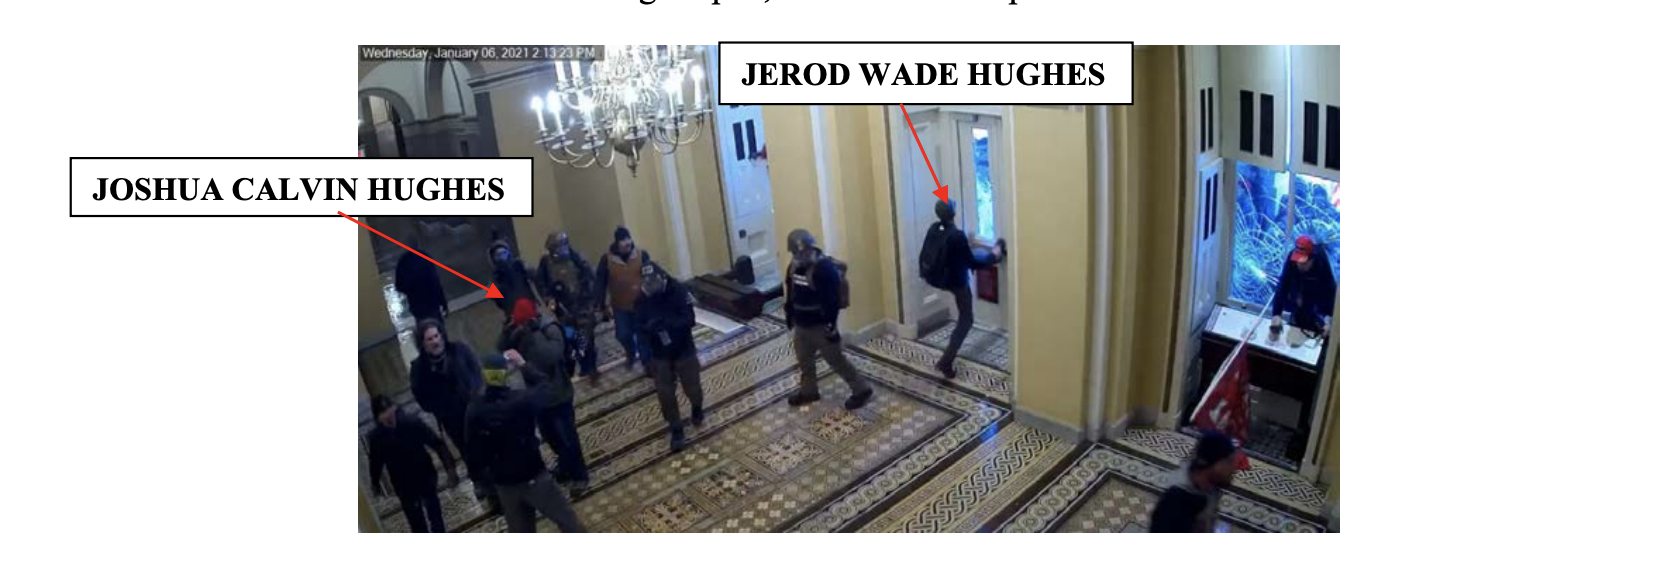 A court document shows a still from video footage of Jerod kicking a door at the Capitol